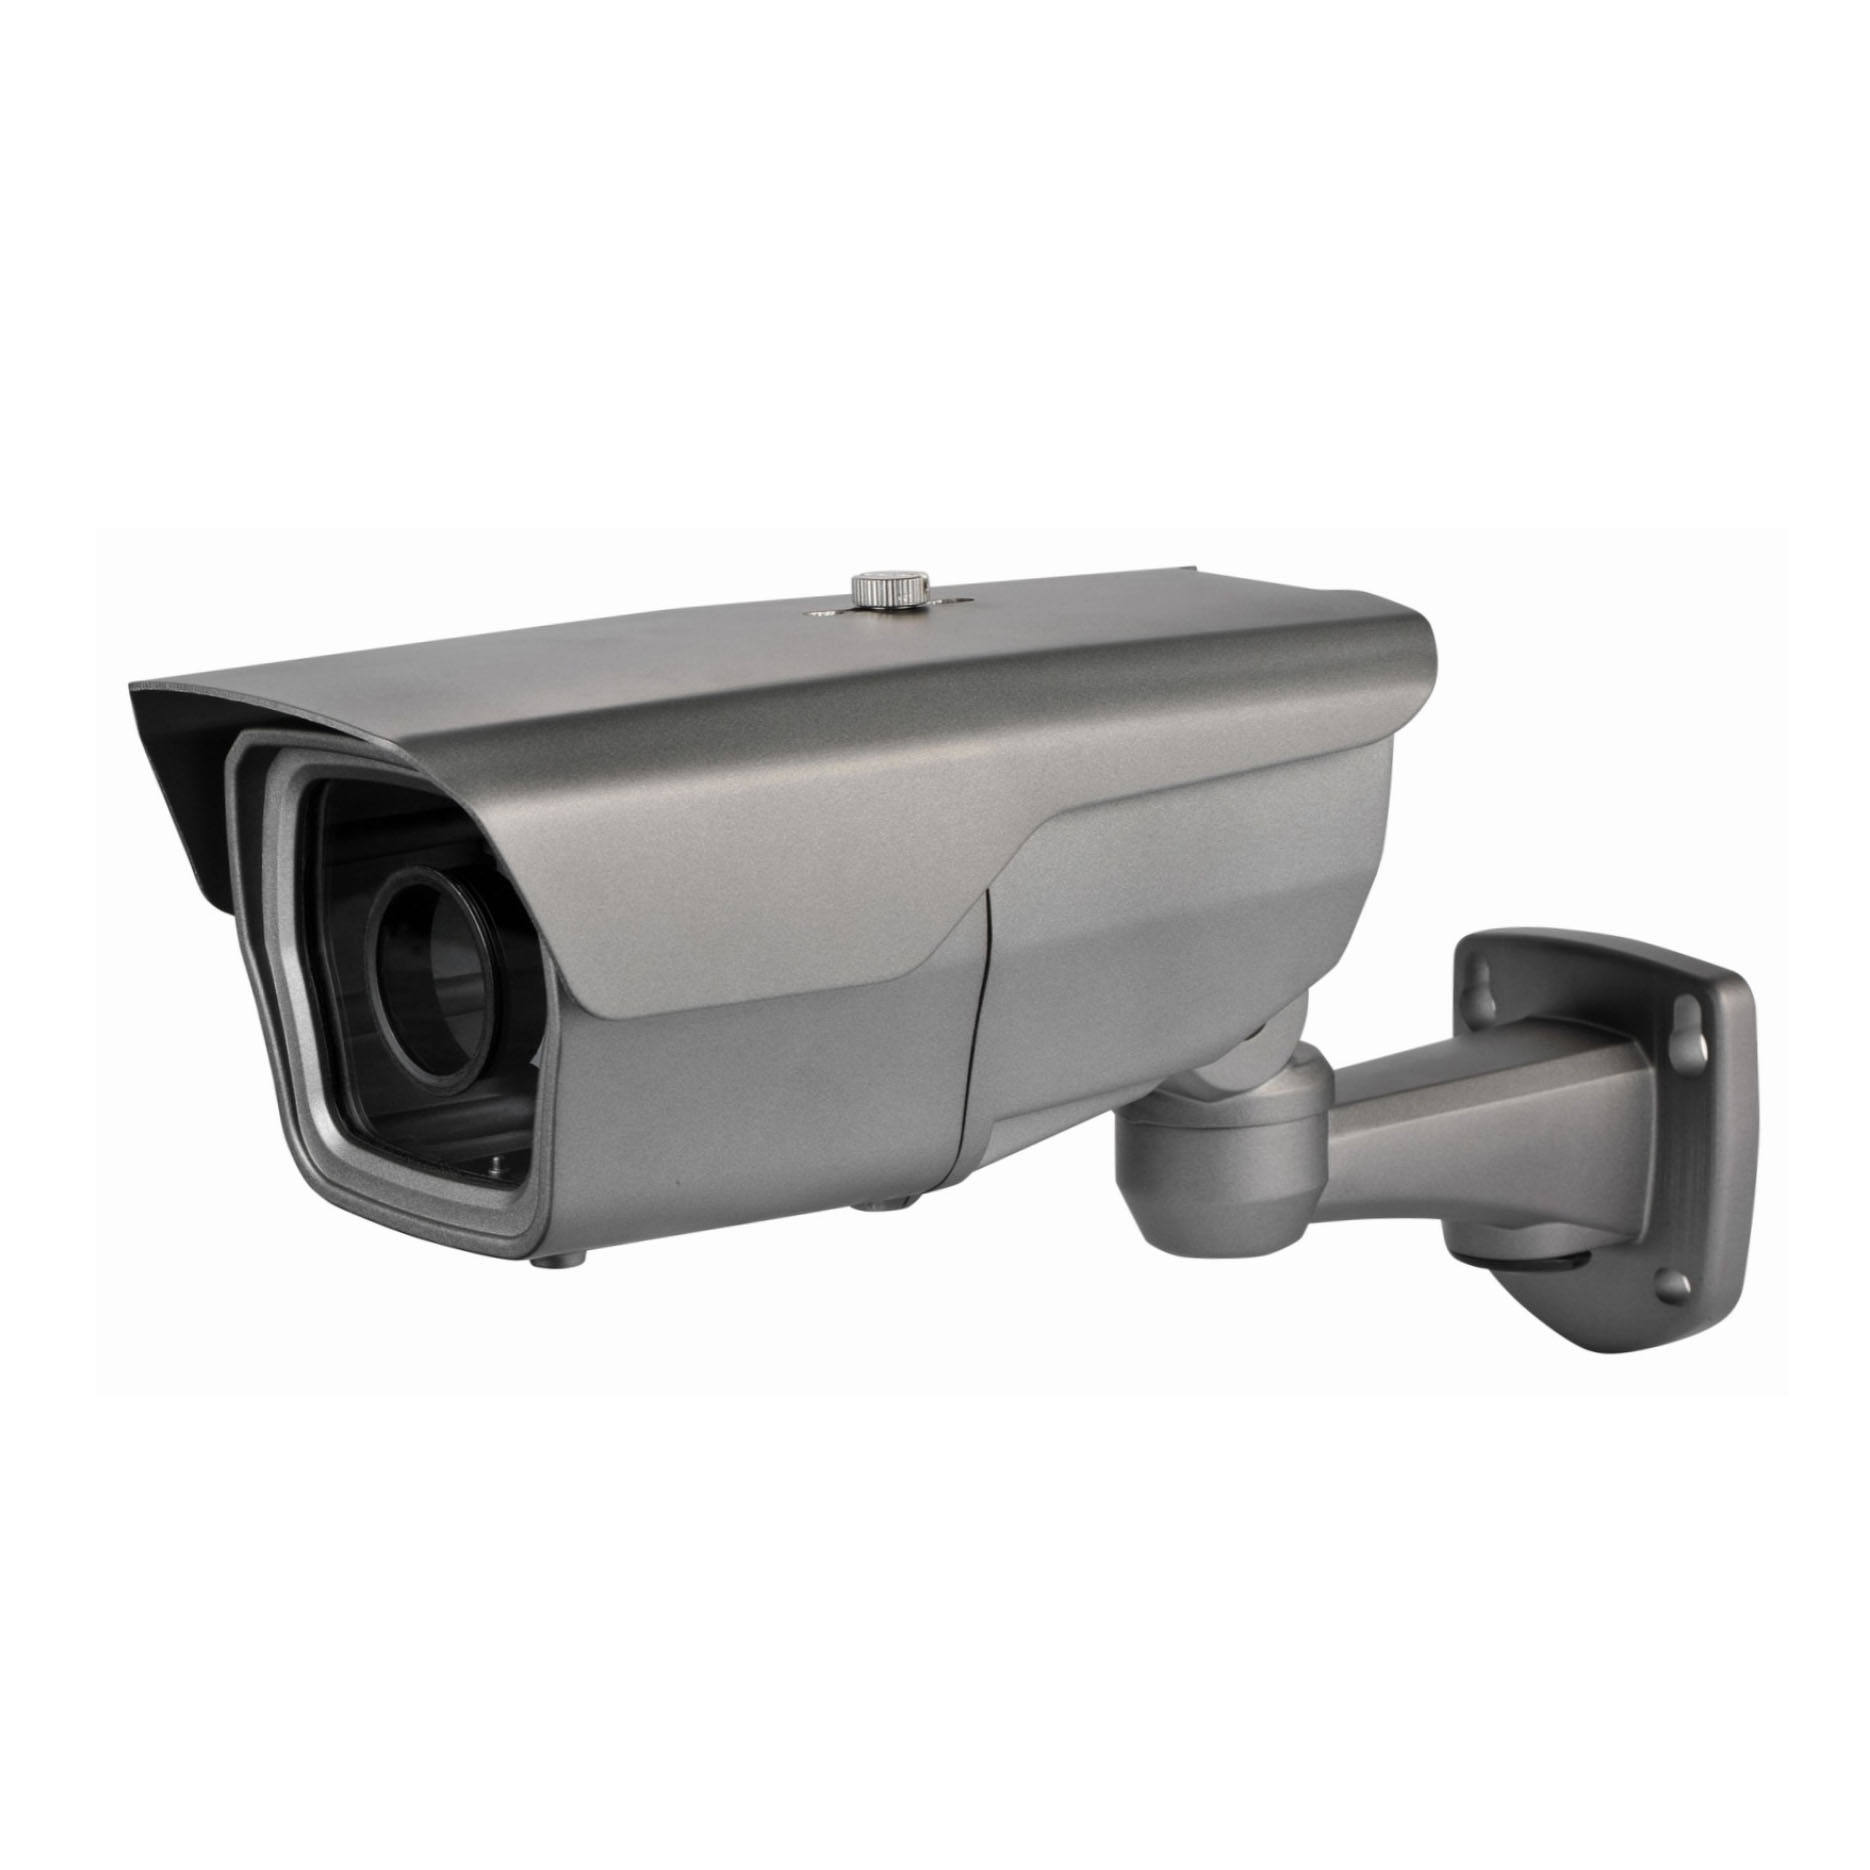 Outdoor <span class=keywords><strong>Tahan</strong></span> <span class=keywords><strong>Air</strong></span> M12 Lensa 48 Pcs <span class=keywords><strong>IR</strong></span> LED CCTV Kamera <span class=keywords><strong>Perumahan</strong></span>